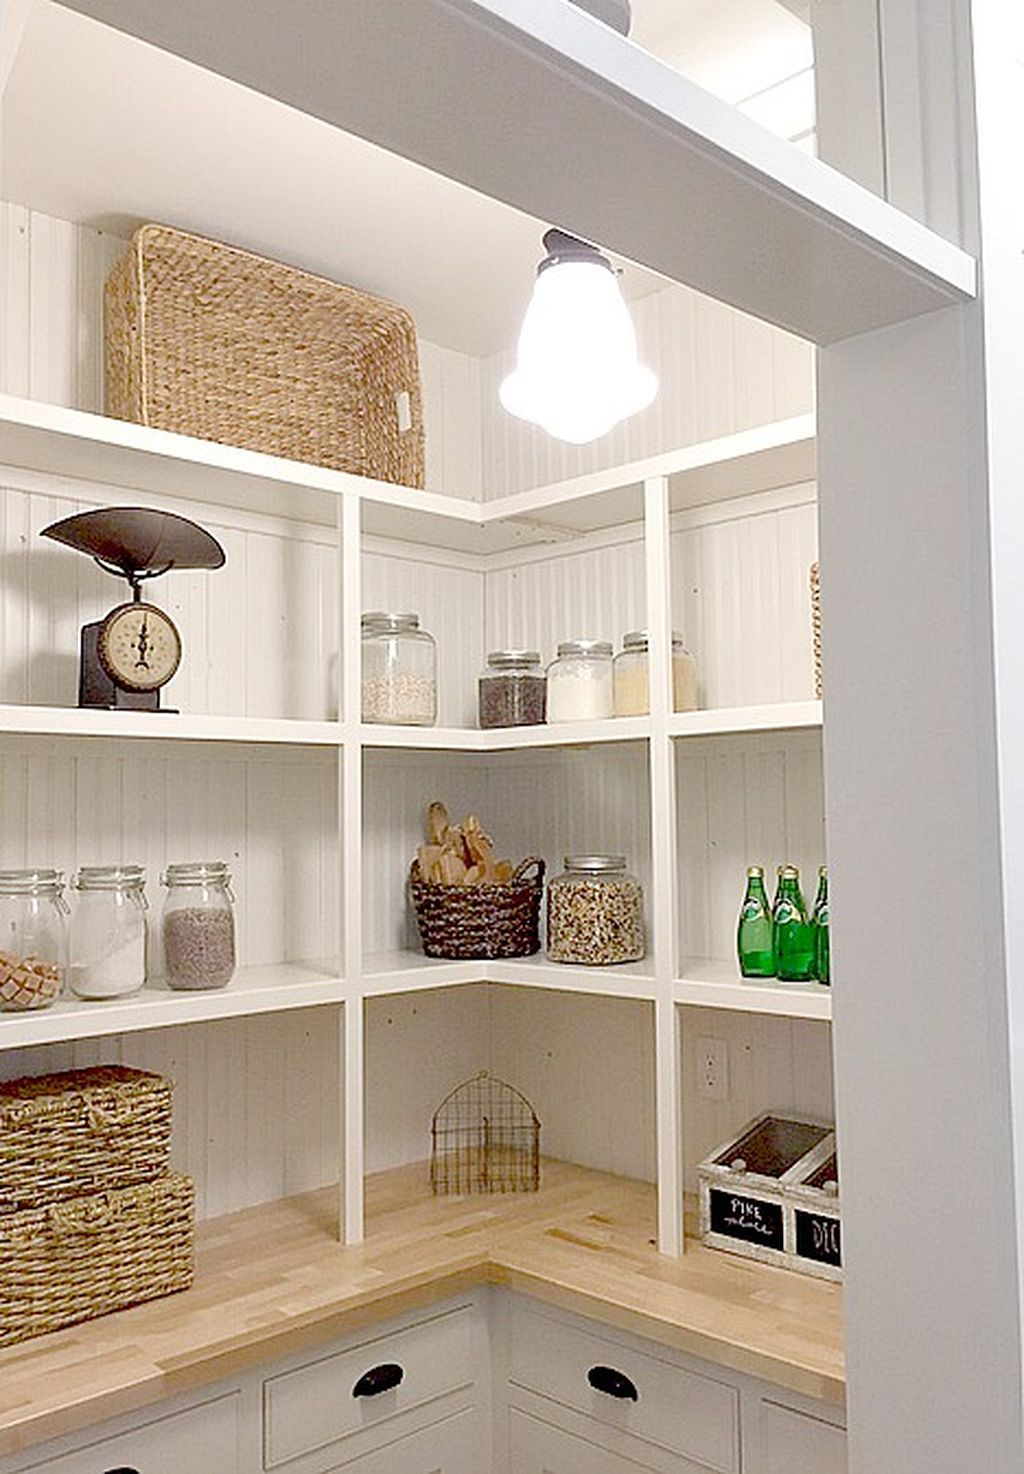 Ikea Küche Organisation Cool 60 Pantry Organization Ideas For The Home Pantry